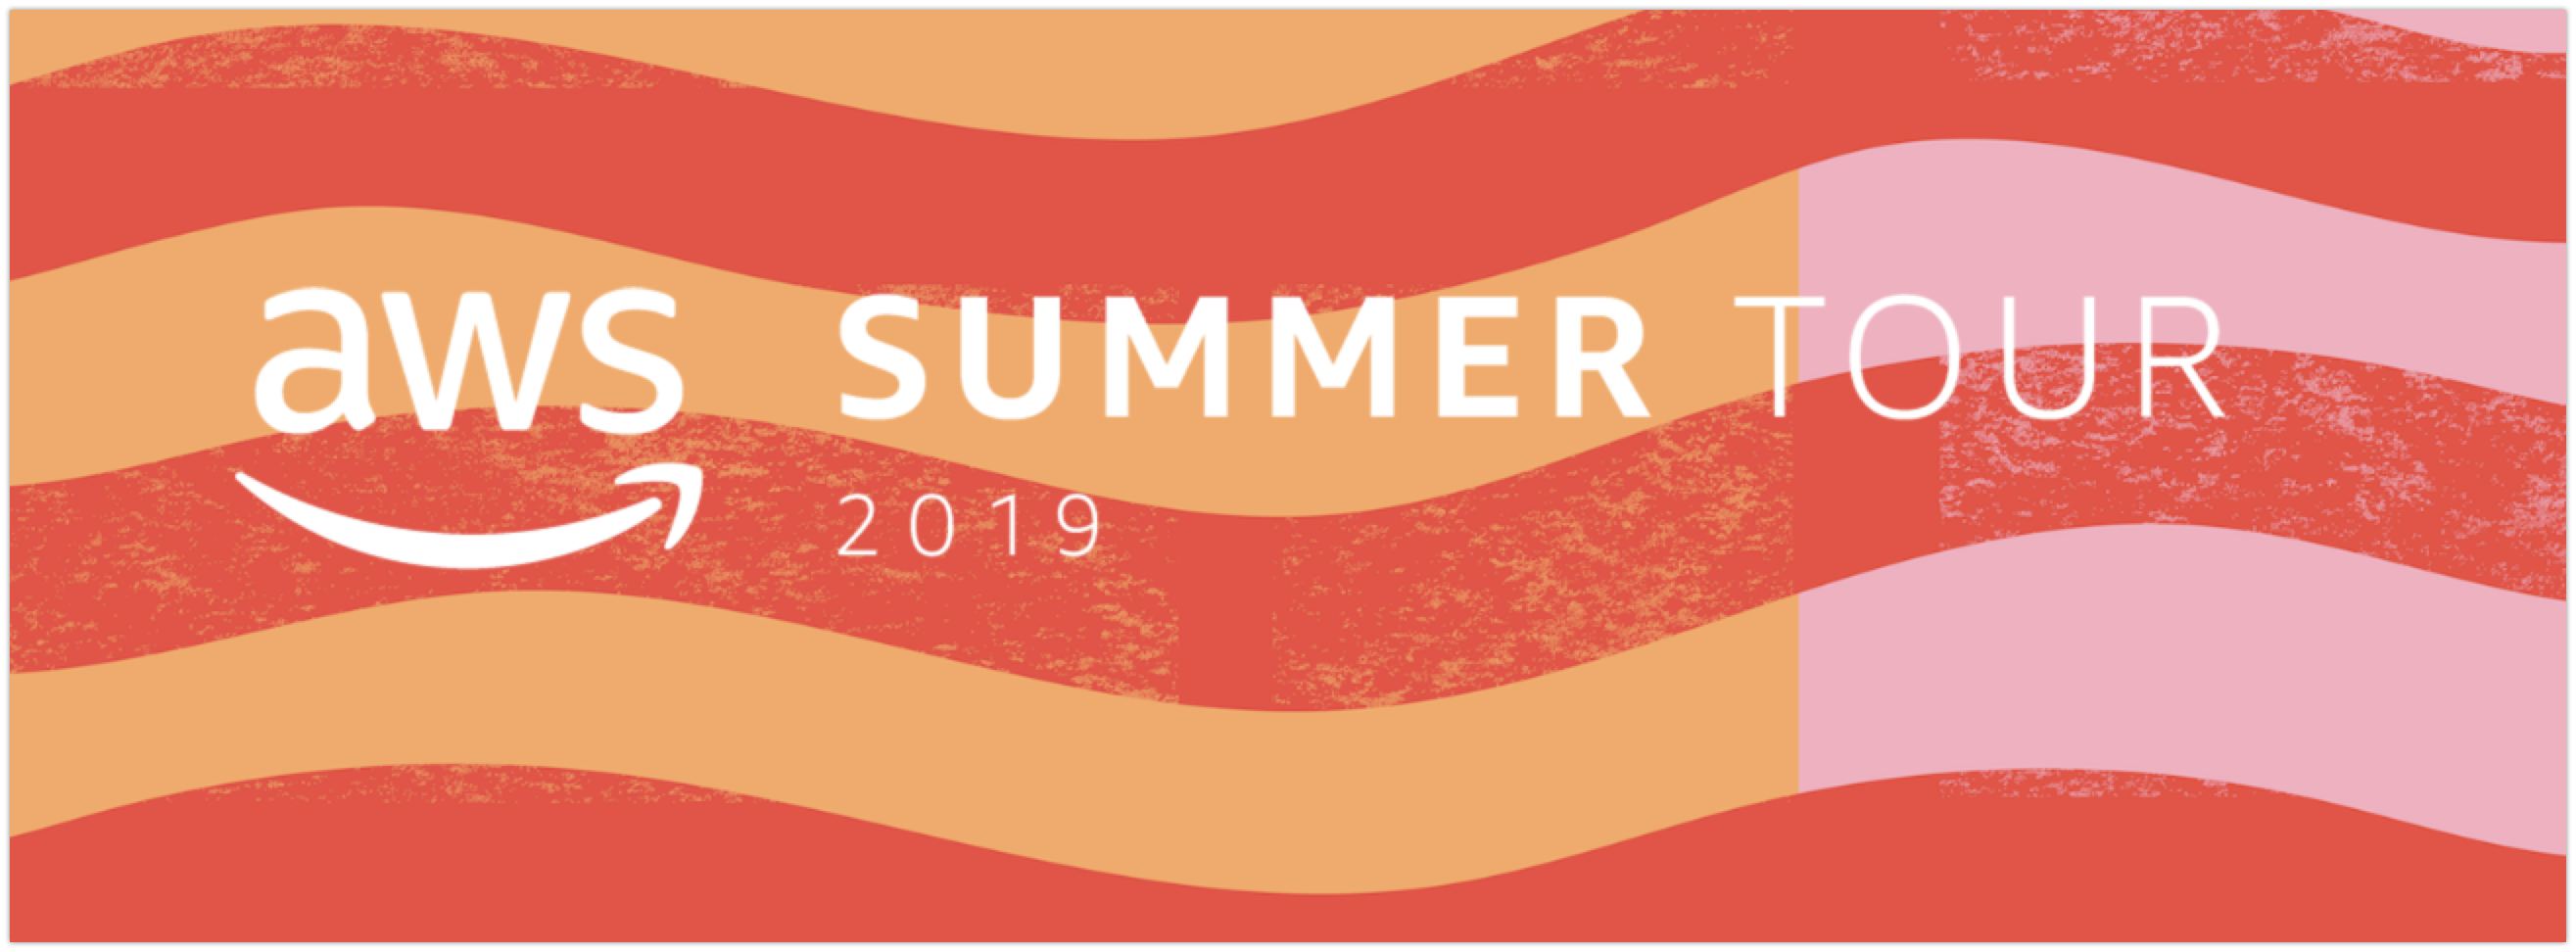 AWS Summer Tour 2019